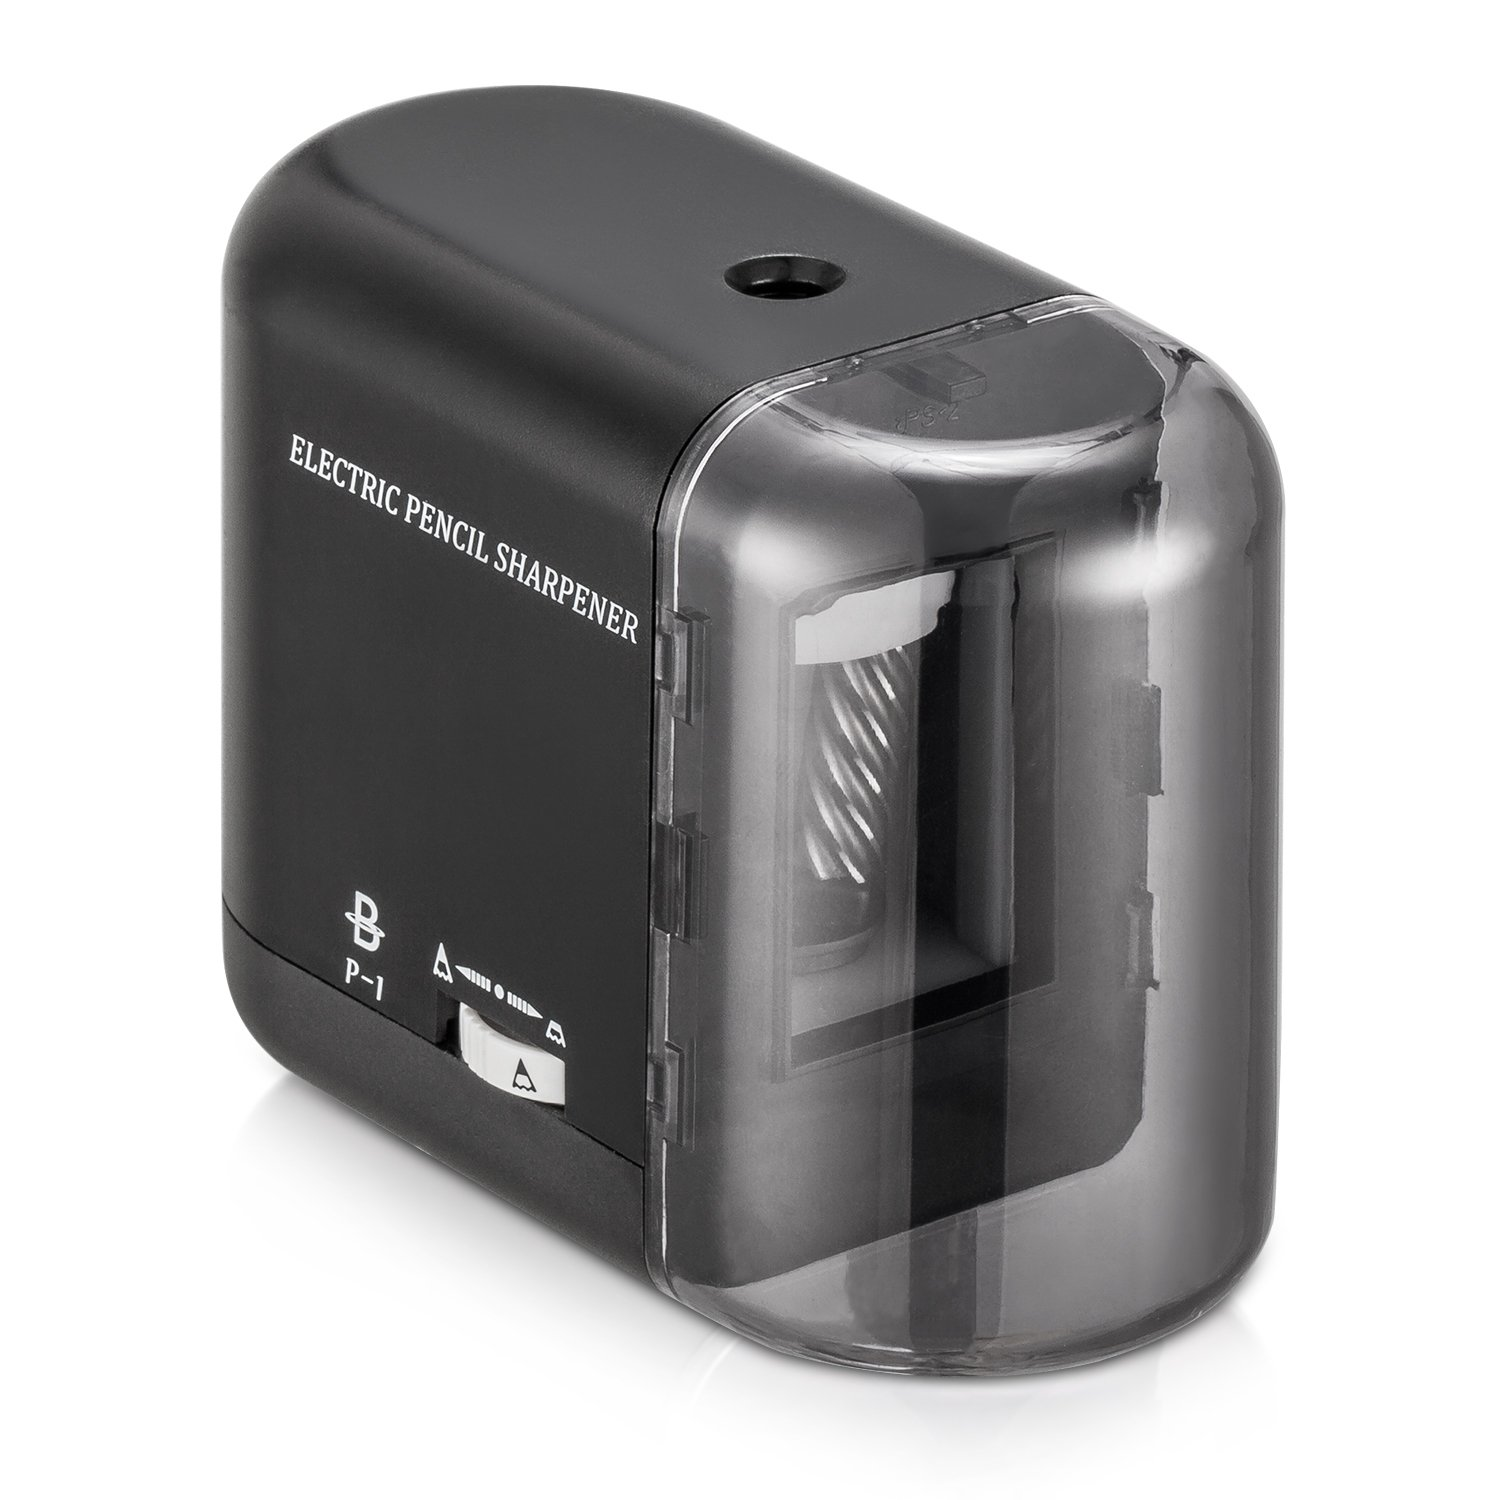 BOOCOSA Pencil Sharpener, BEST Heavy Duty Steel Blade, Electric Pencils Sharpener with Auto Stop for School Classroom Office Home – Precise Perfect Point Every time for Artists Kids Adults